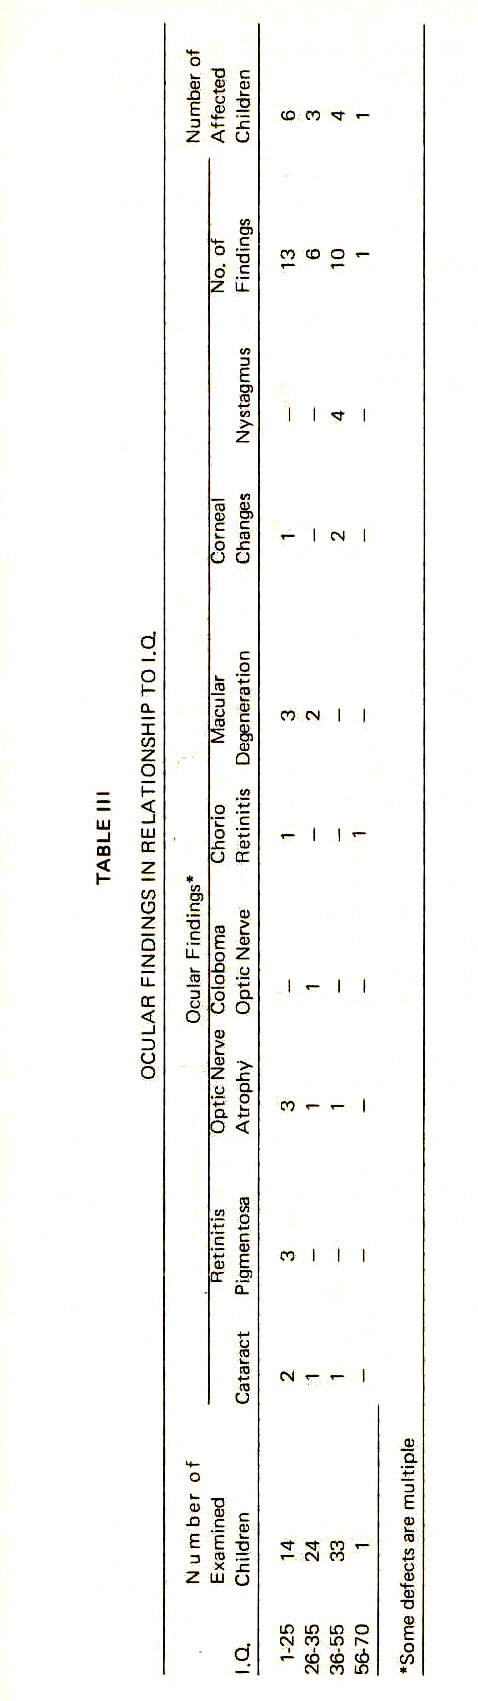 TABLE IIIOCULAR FINDINGS IN RELATIONSHIPTO I.Q